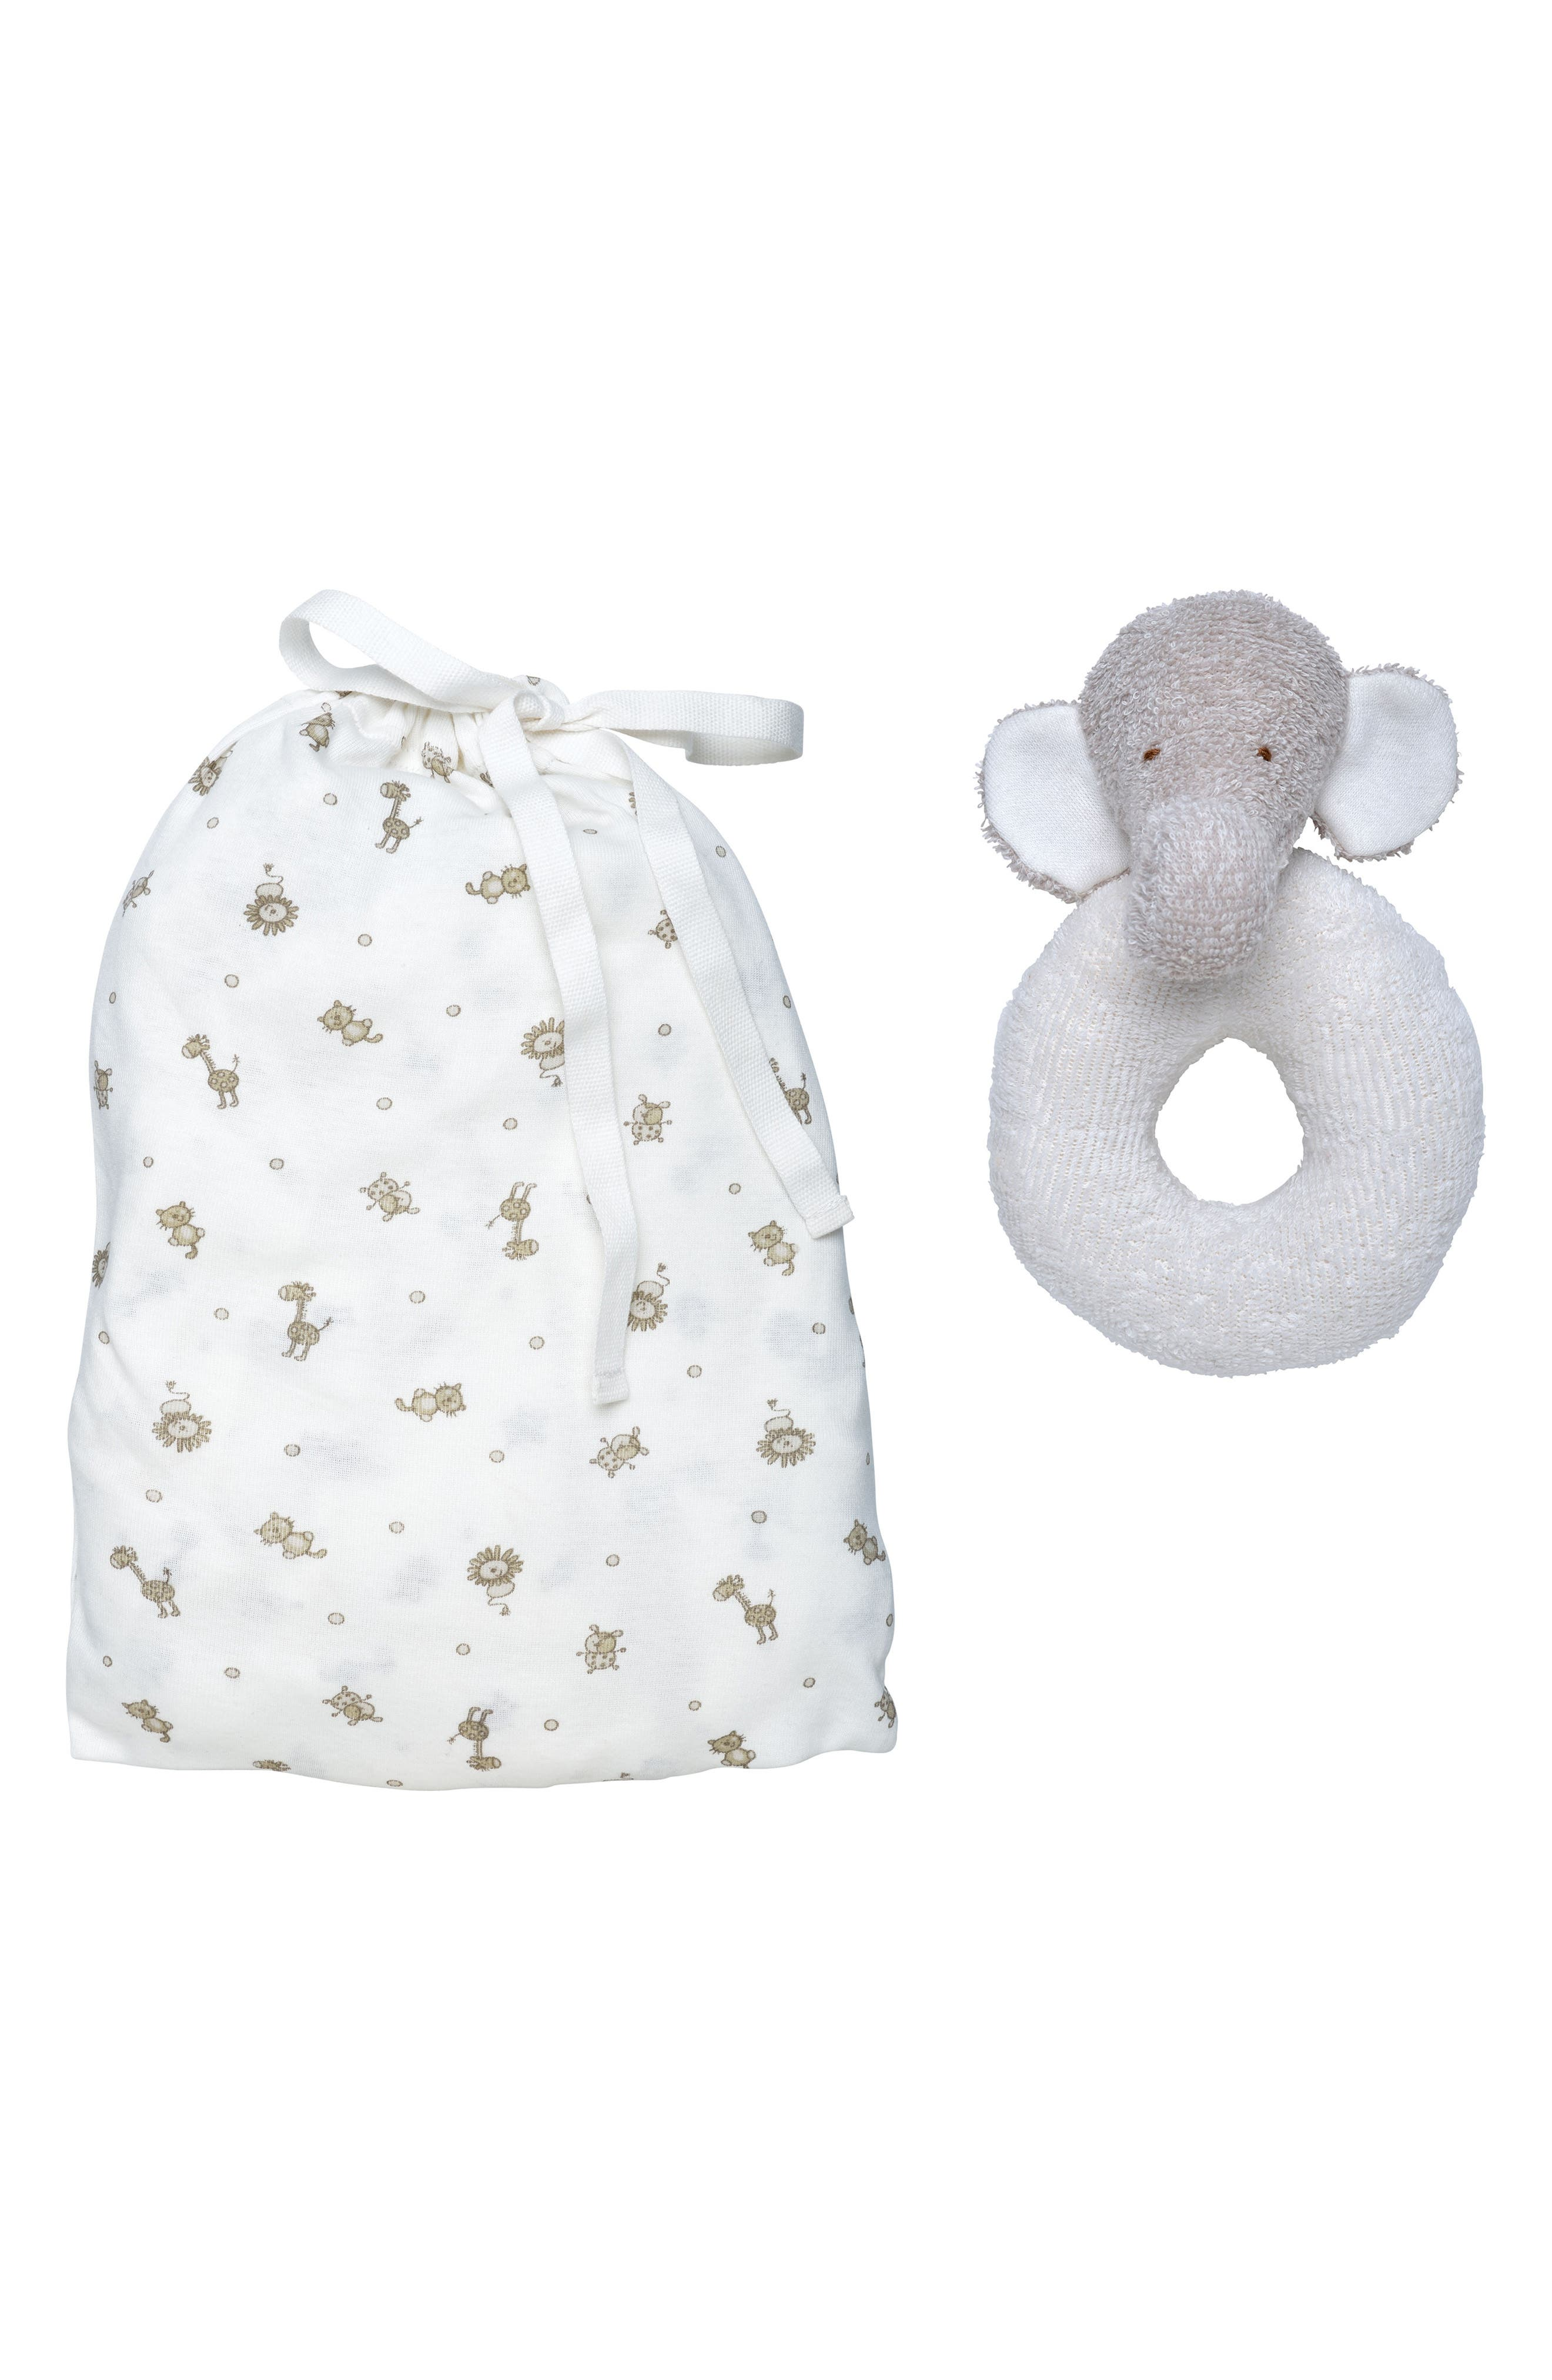 Alternate Image 1 Selected - Under the Nile 2-Piece Safari Print Fitted Crib Sheet & Stuffed Elephant Toy Set